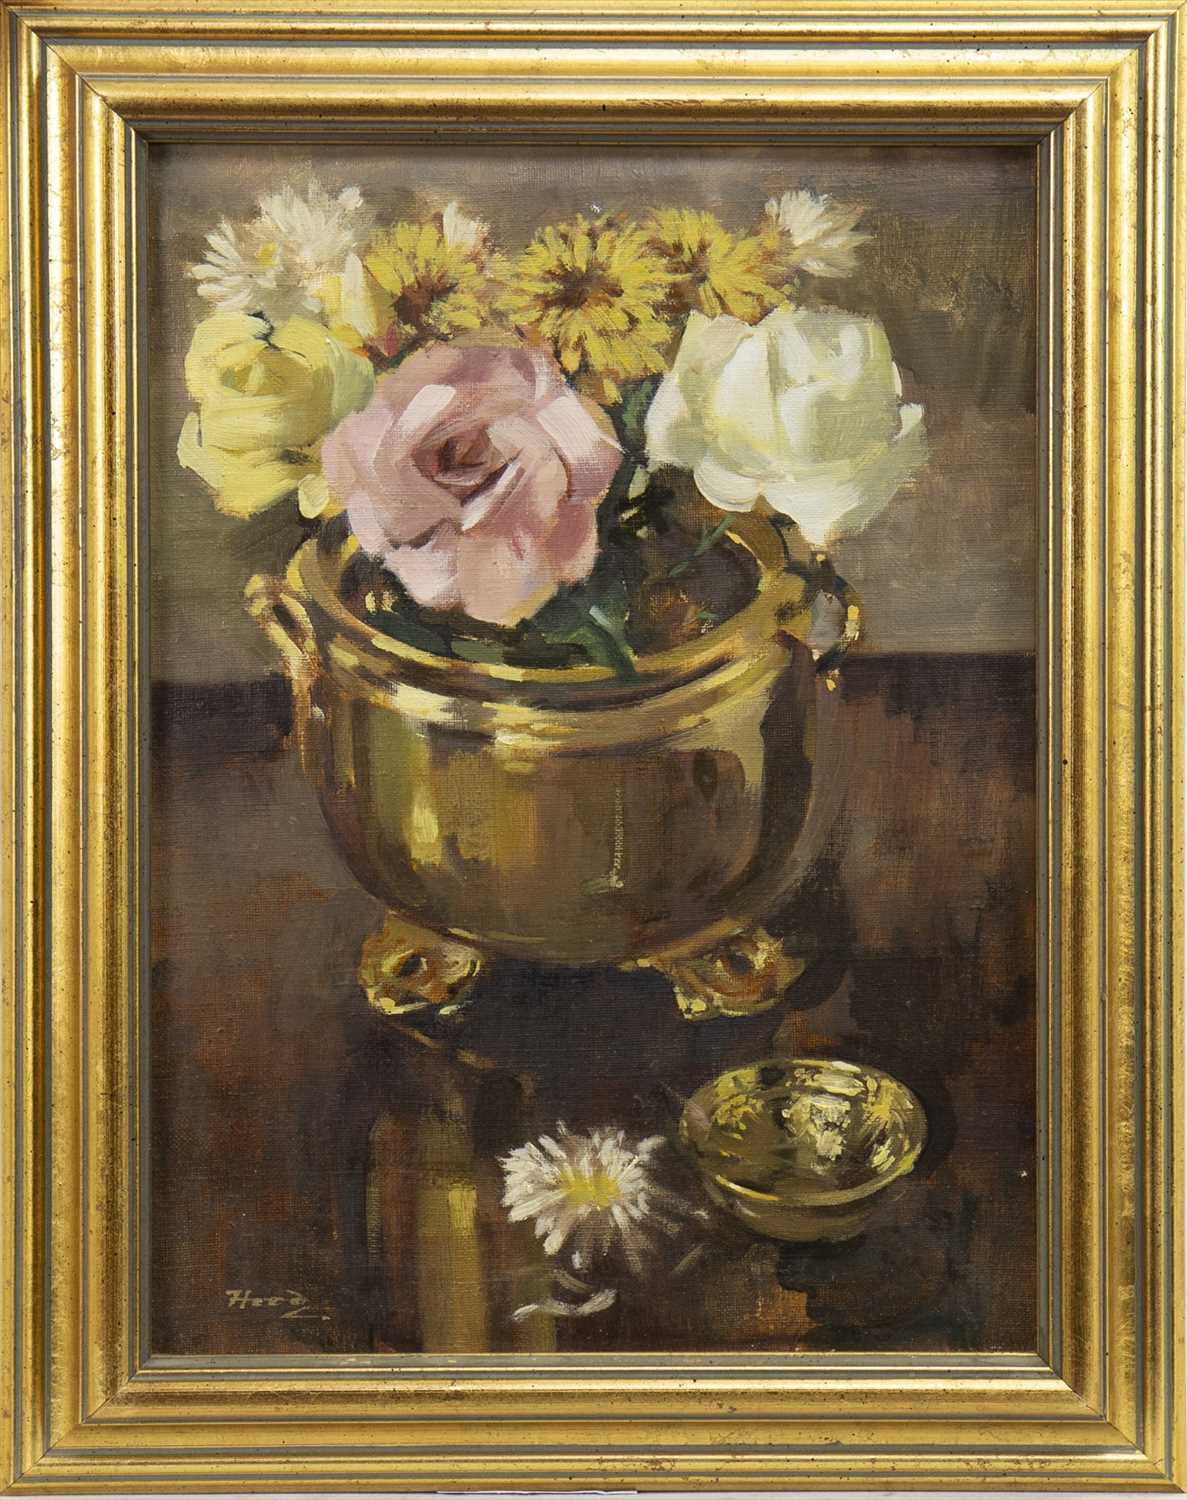 Lot 4-ROSES AND CHRYSANTHEMUMS, AN OIL BY ERNEST HOOD